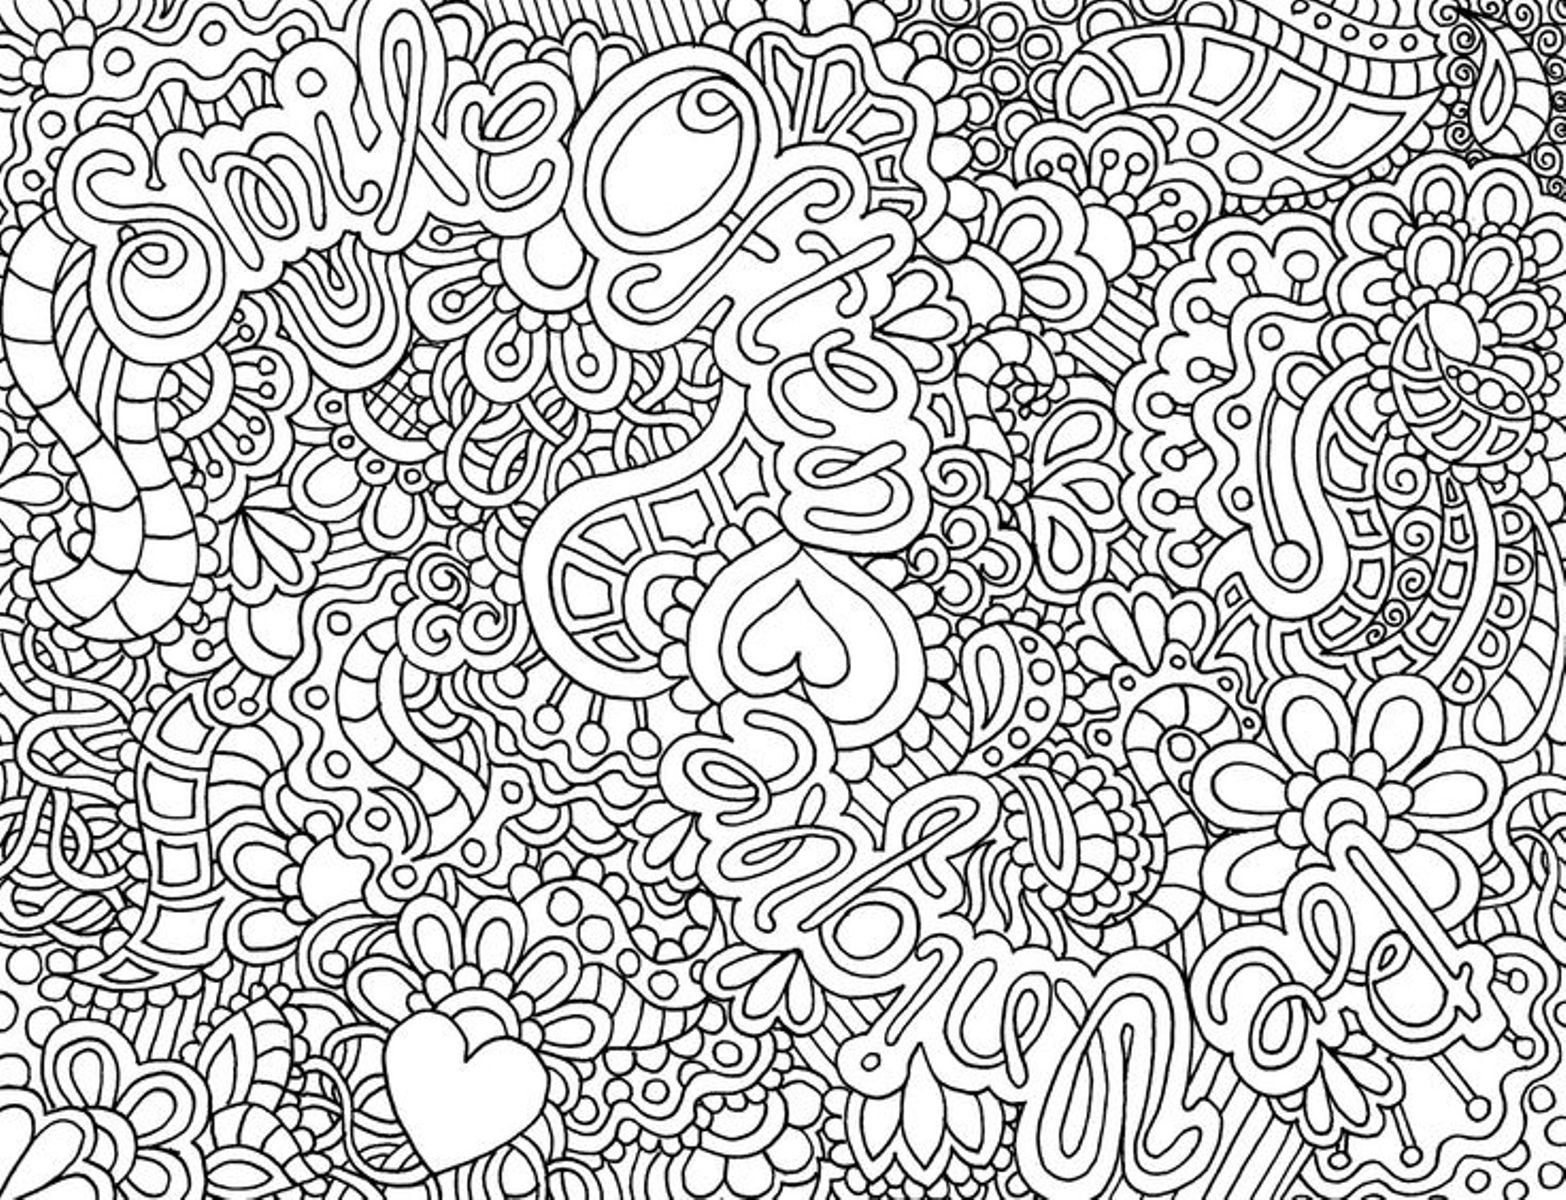 puppy coloring pages for teenagers 111 | Best Coloring Page Site